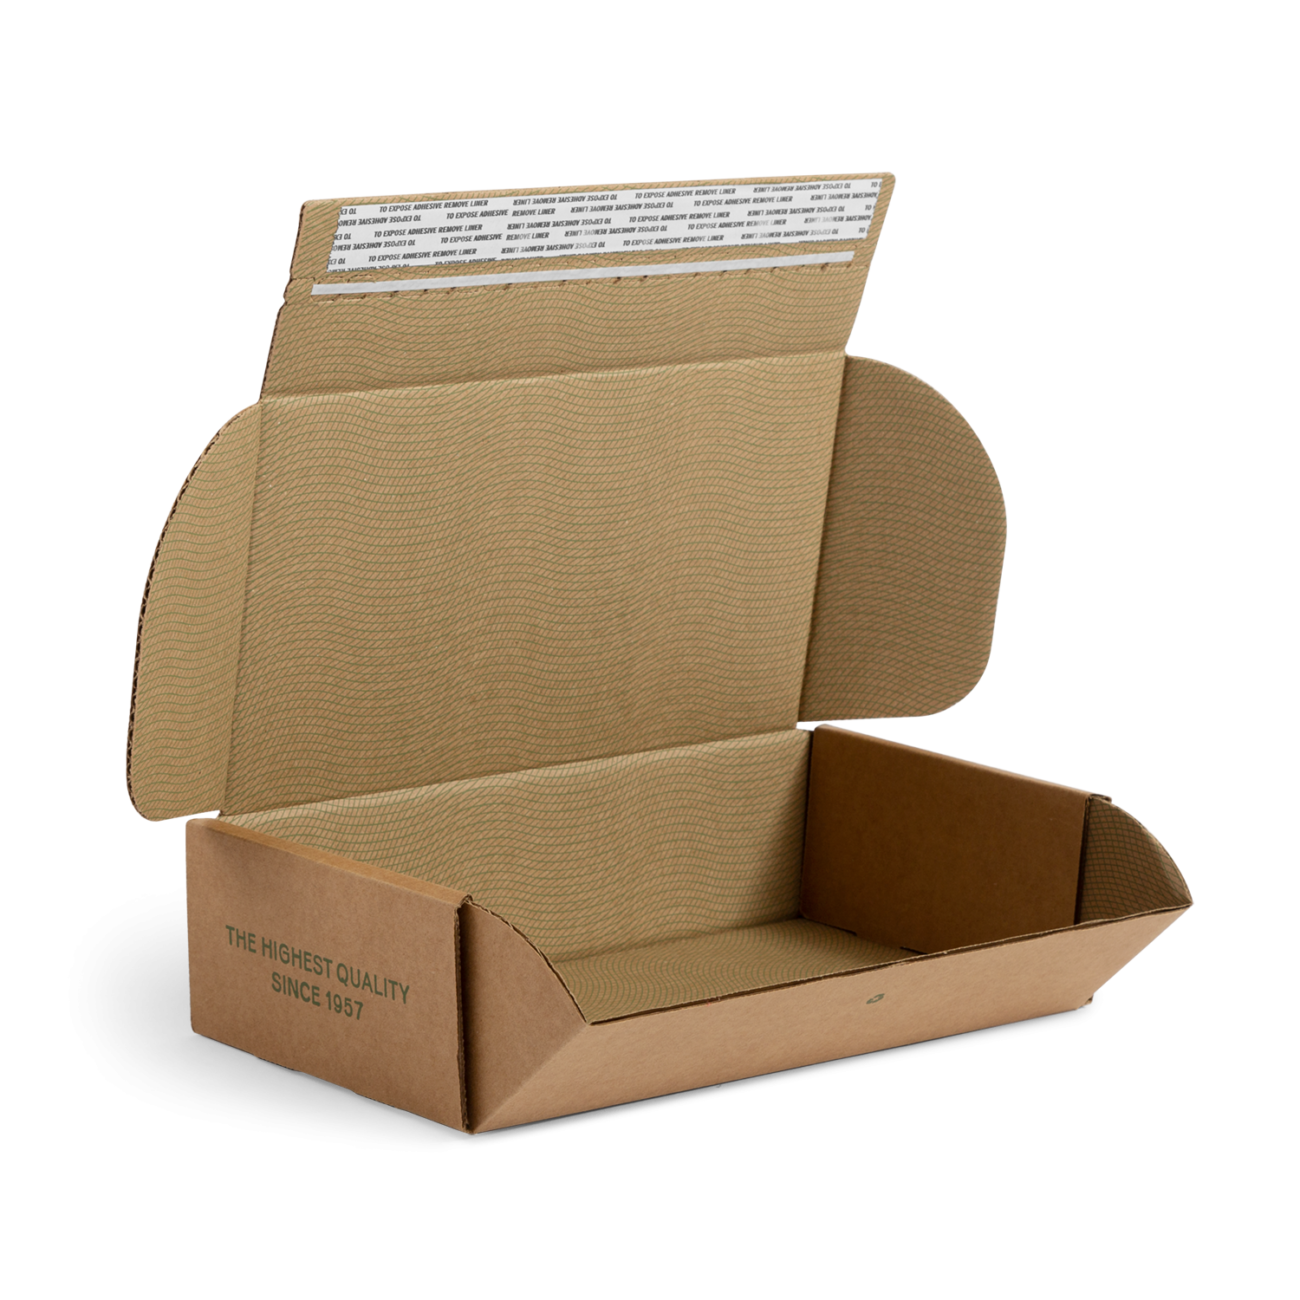 Custom roll end tuck front corrugated mailer box with roll end base, dust flaps, adhesive strip, tear strip. Flexography on natural kraft liner.